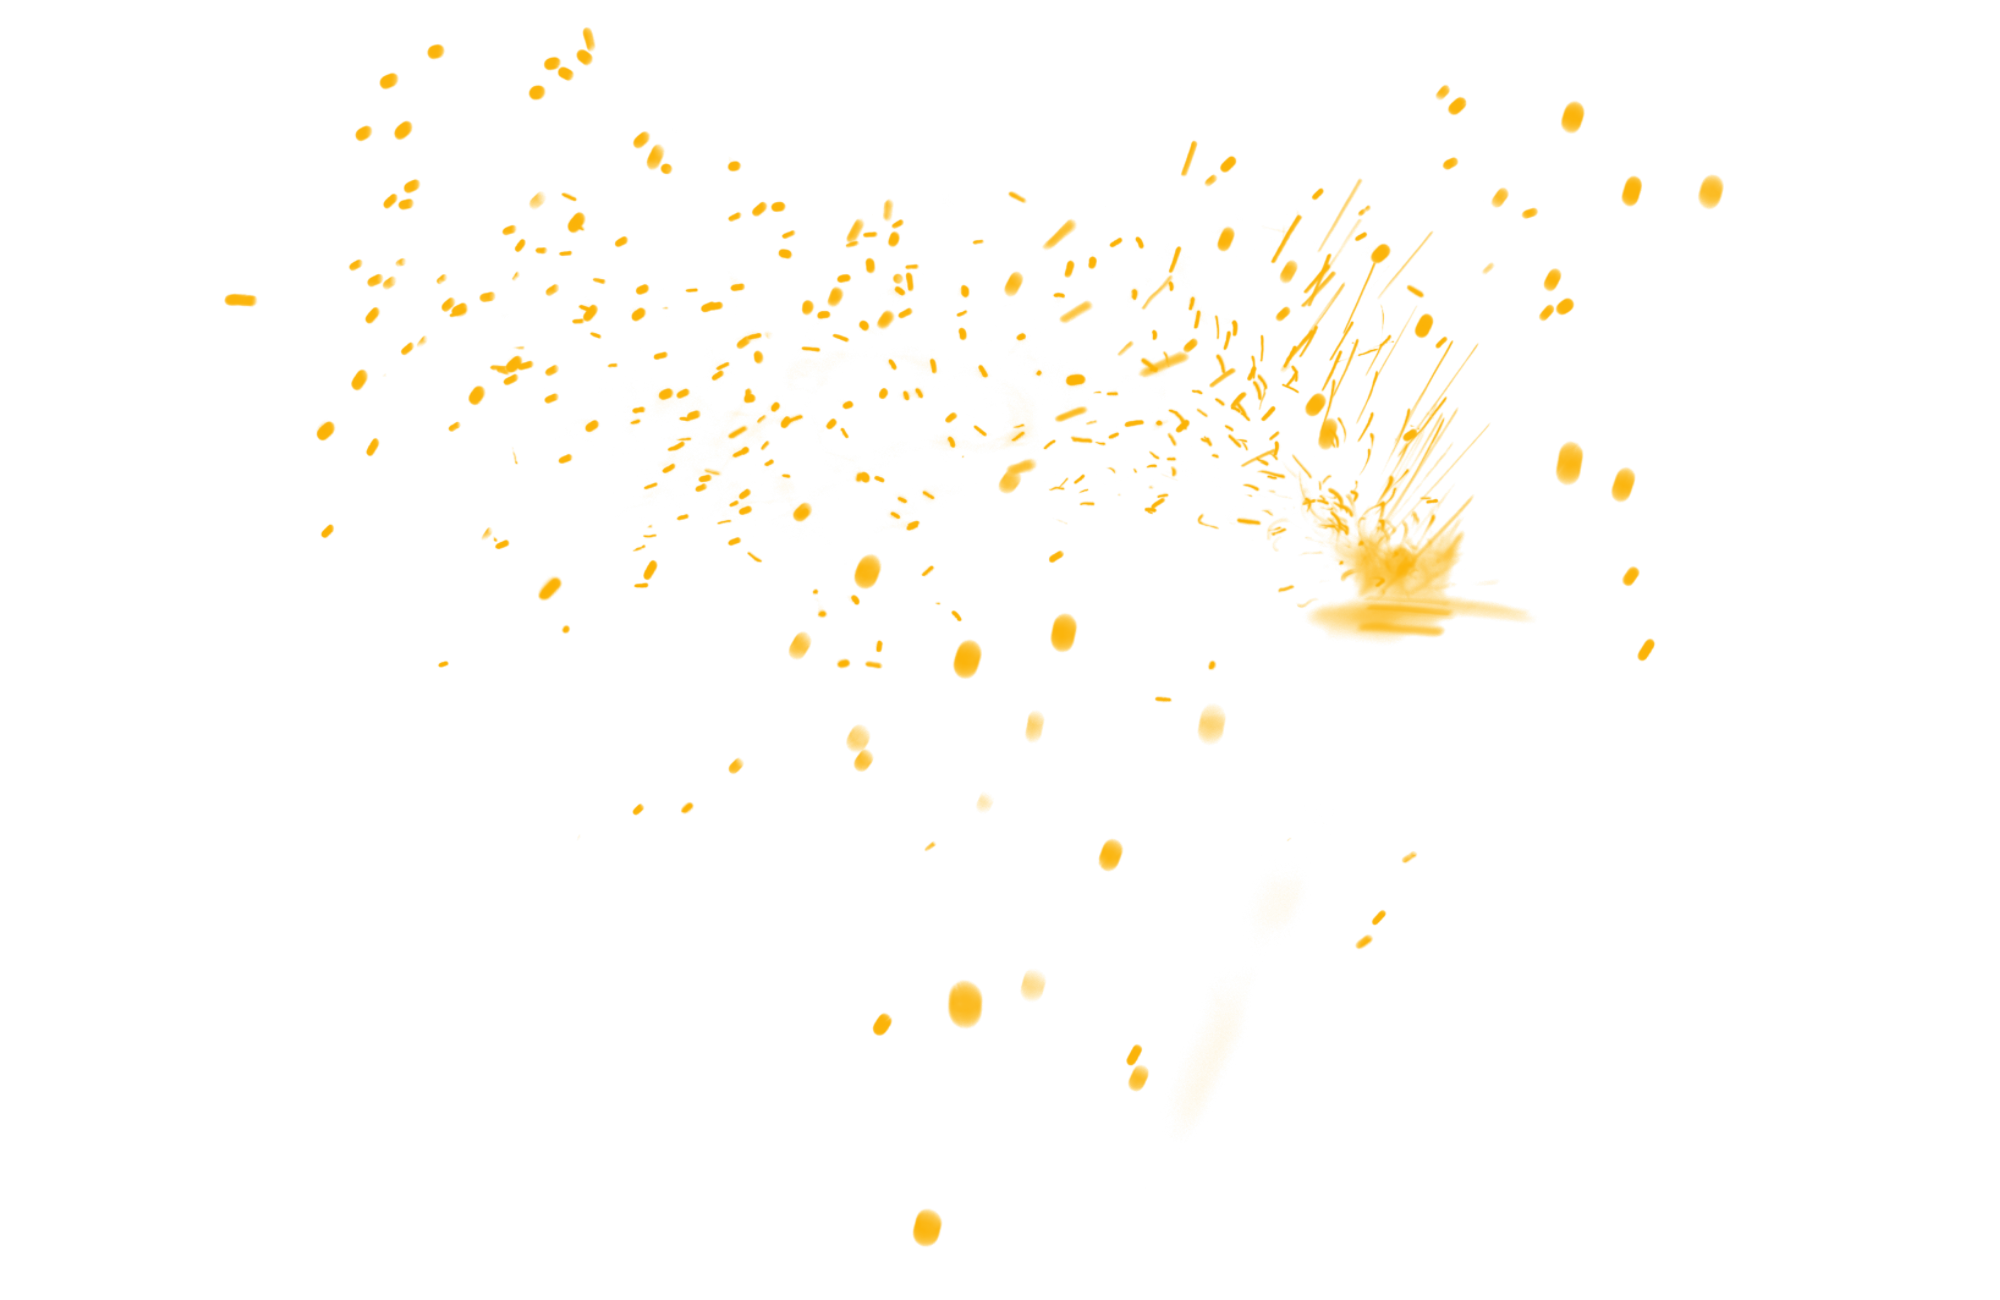 Explosion sparks clipart freeuse download Download Fire Explosion Spark Flame Effects Free HD Image Clipart ... freeuse download